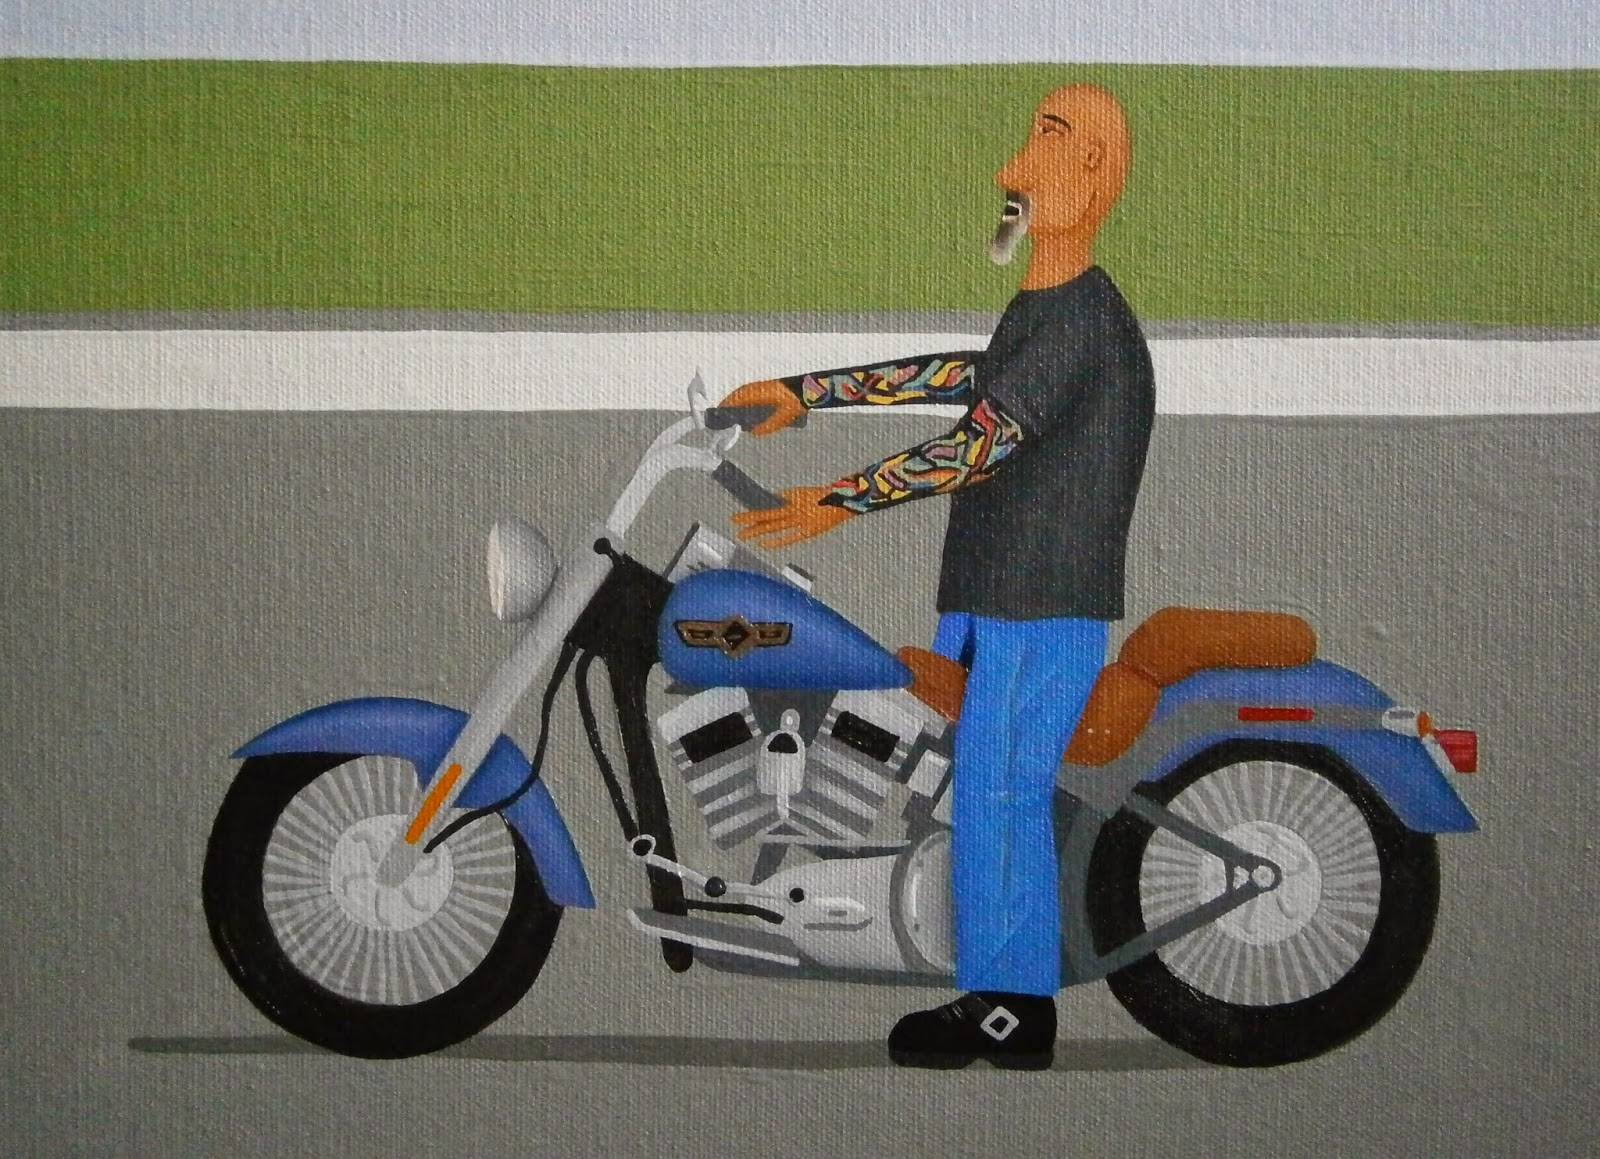 Shrunken bald biker man from painting Oh Hello Bad Boy